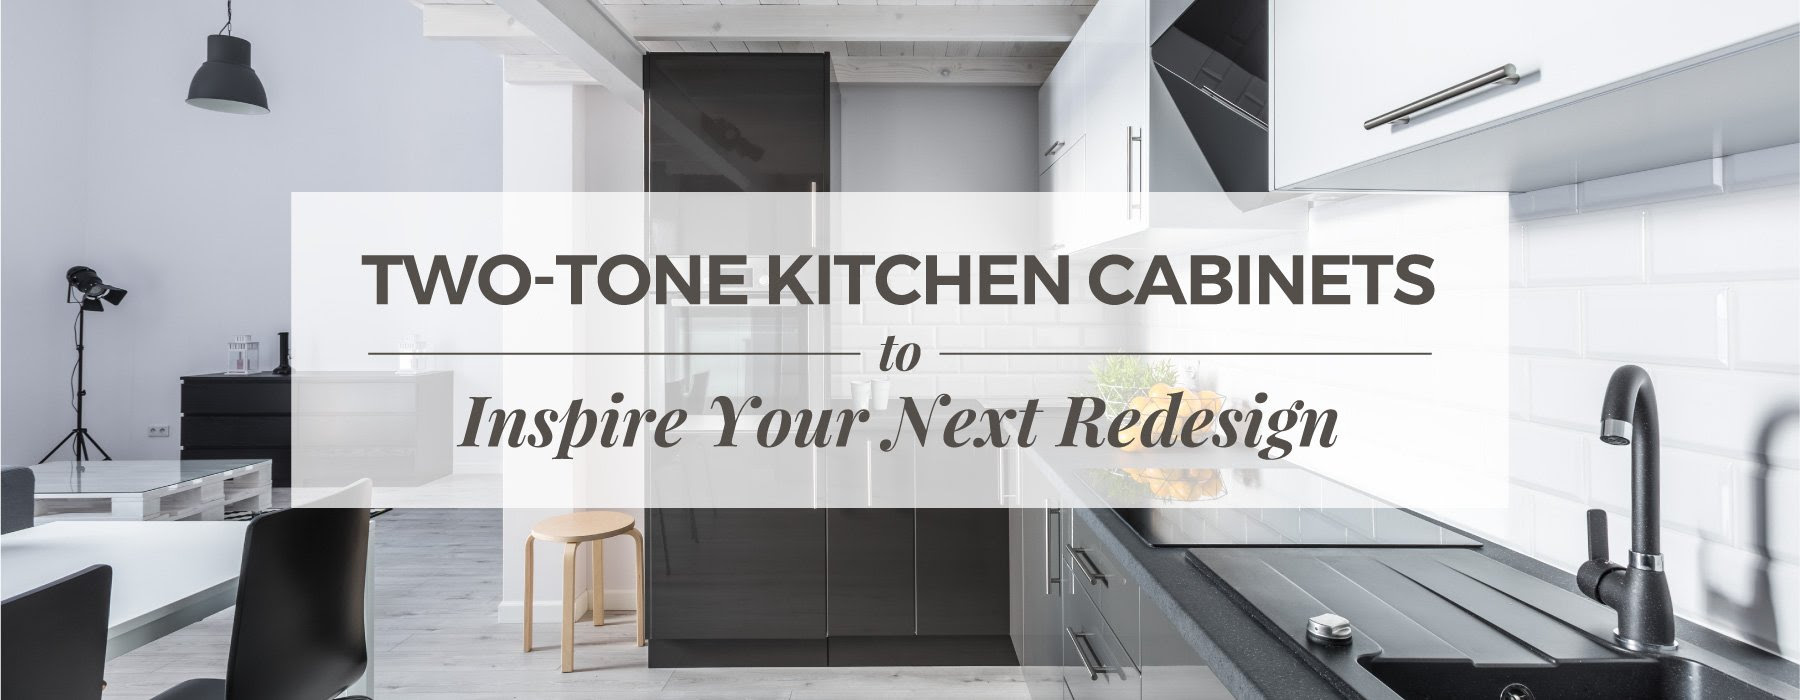 Two-Tone Kitchen Cabinets to Inspire Your Next Redesign